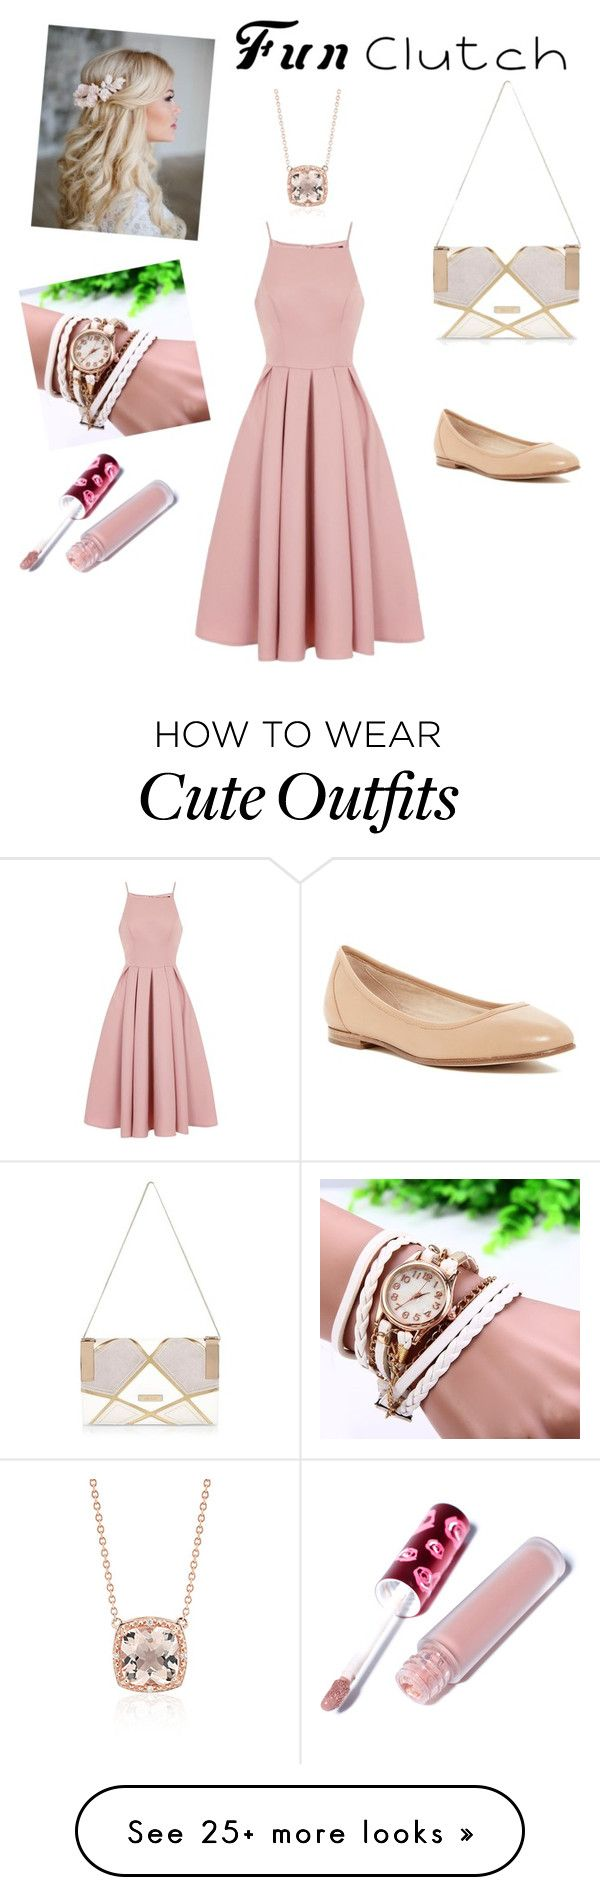 """""""blush pink outfit"""" by apriffle on Polyvore featuring River Island, Chi Chi, Via Spiga, Lime Crime and Blue Nile"""